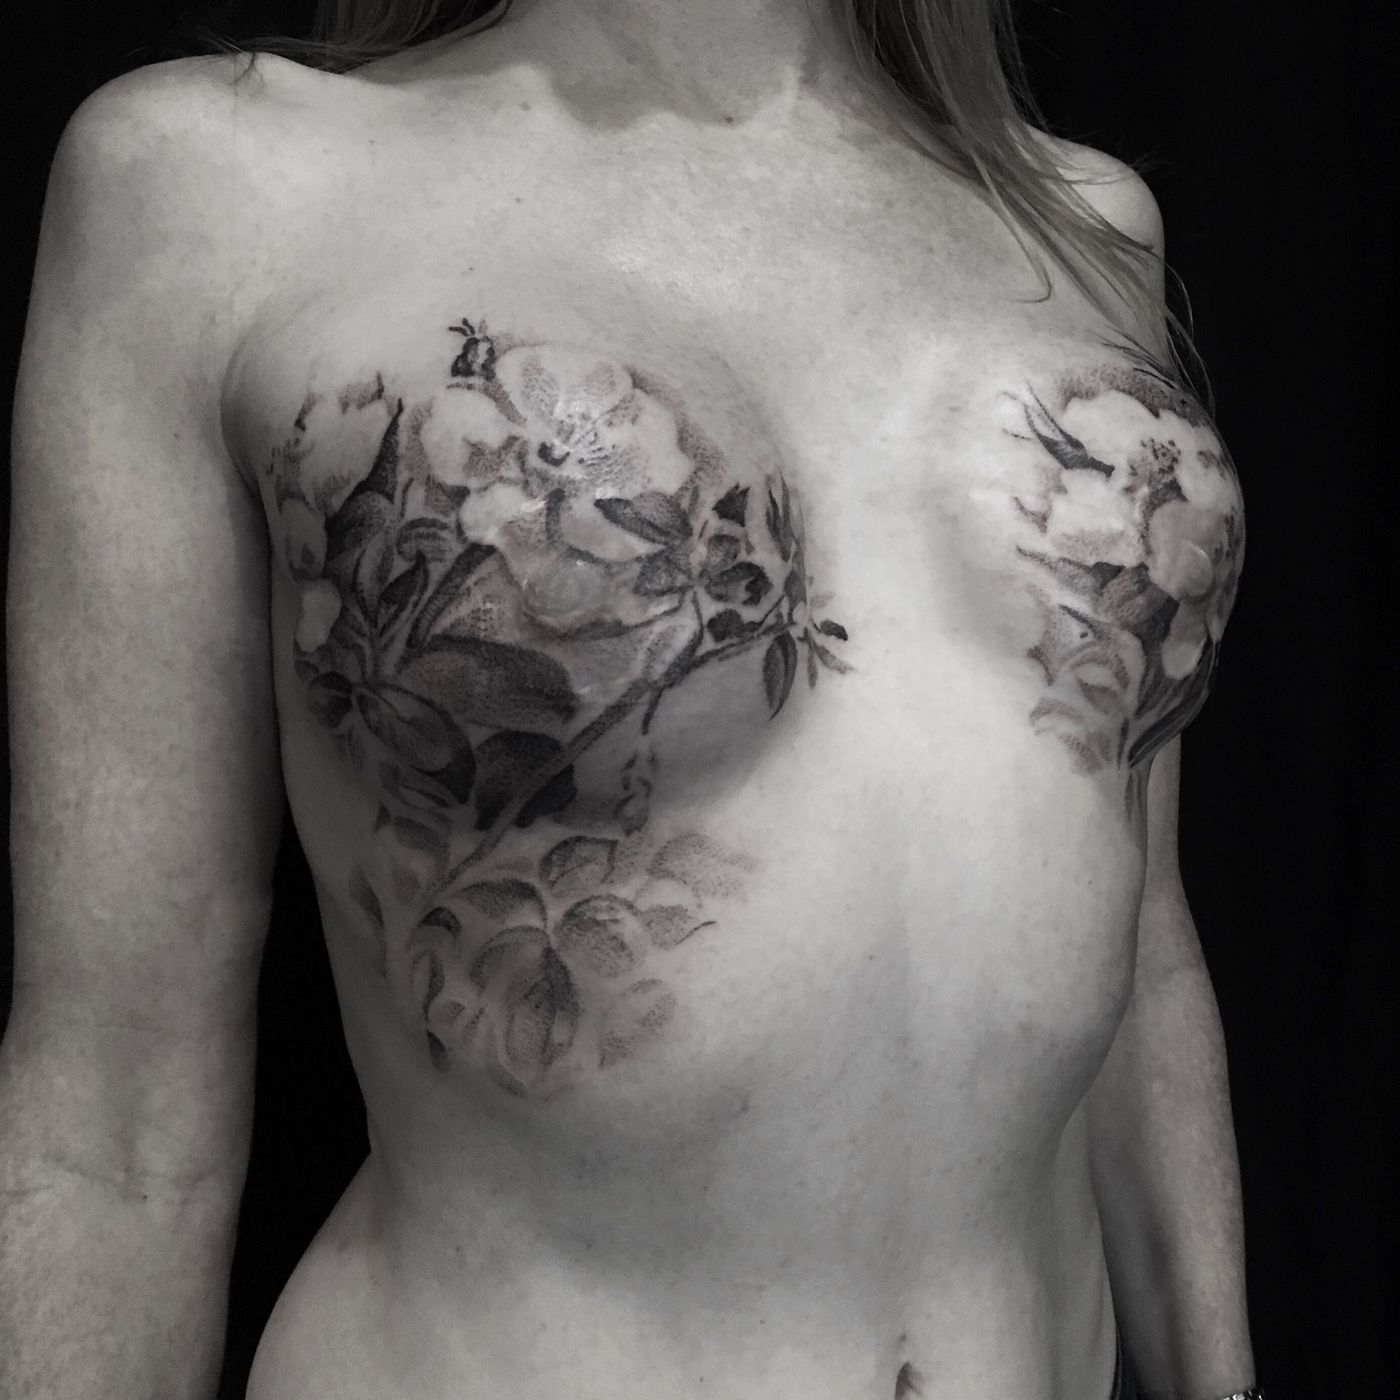 How One Tattoo Artist Helps Breast Cancer Survivors Feel Beautiful